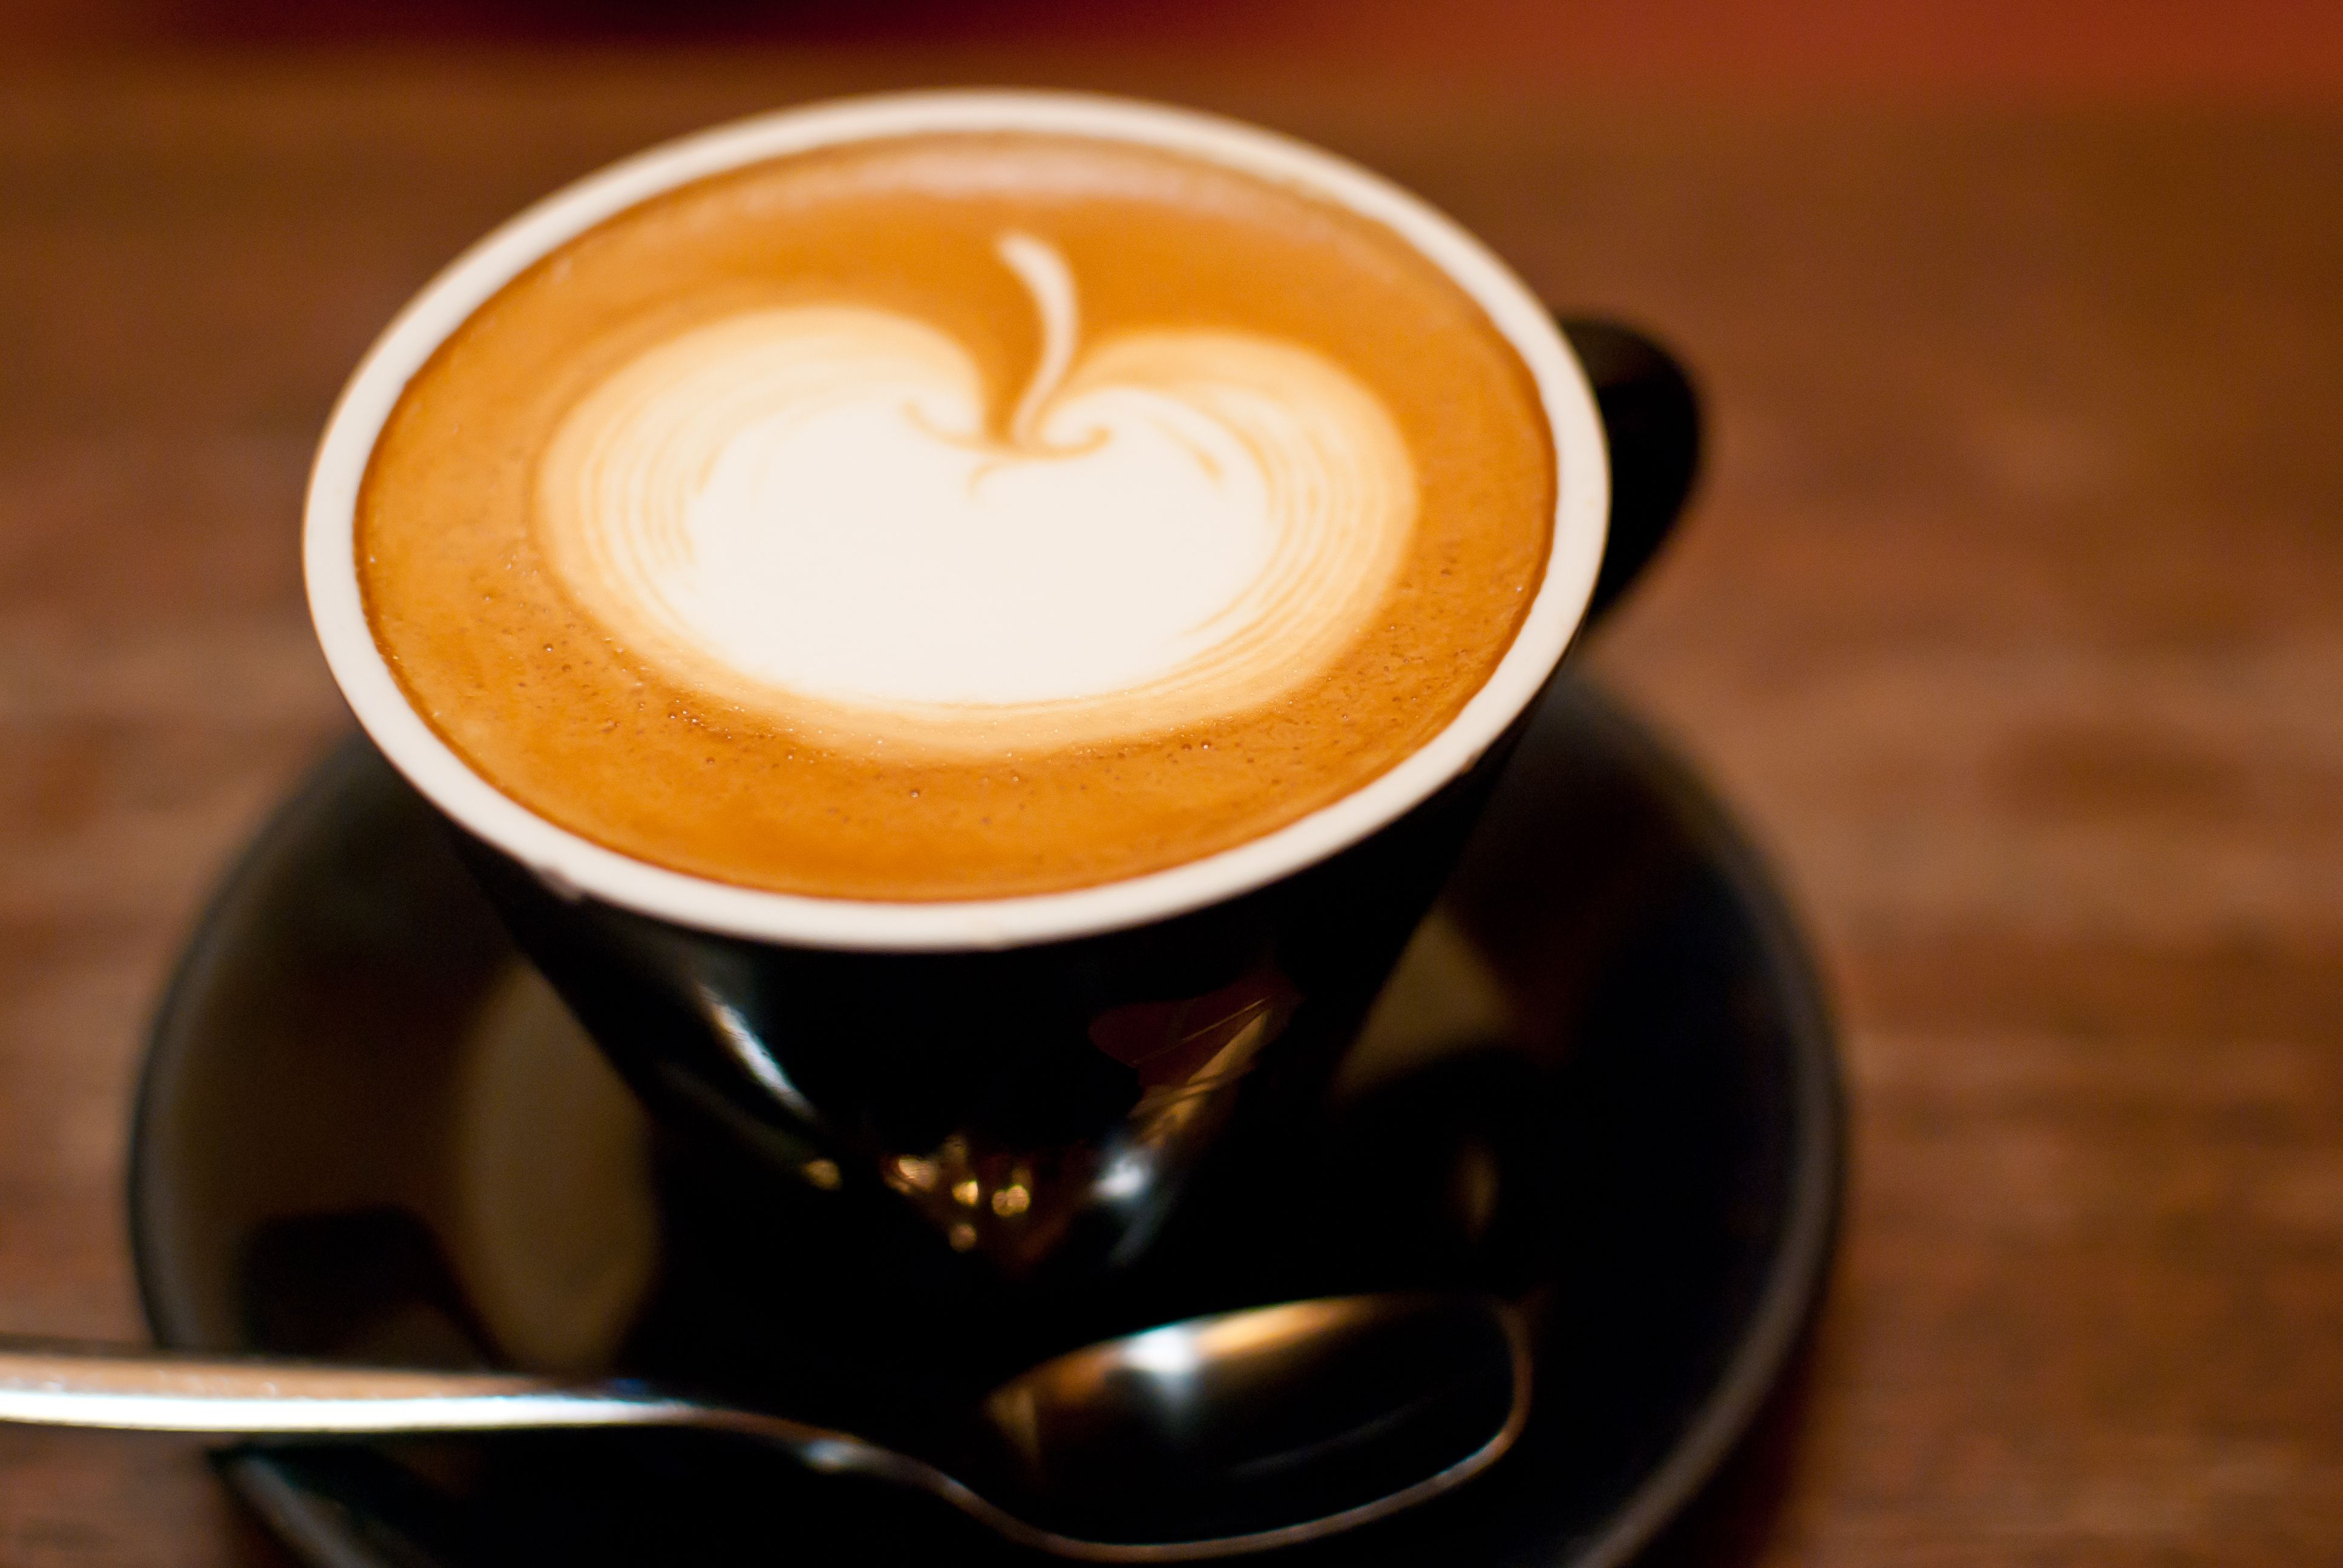 Good morning! Wake up with a warm Cappuccino!  #Morning #Wakeup #Cappuccino